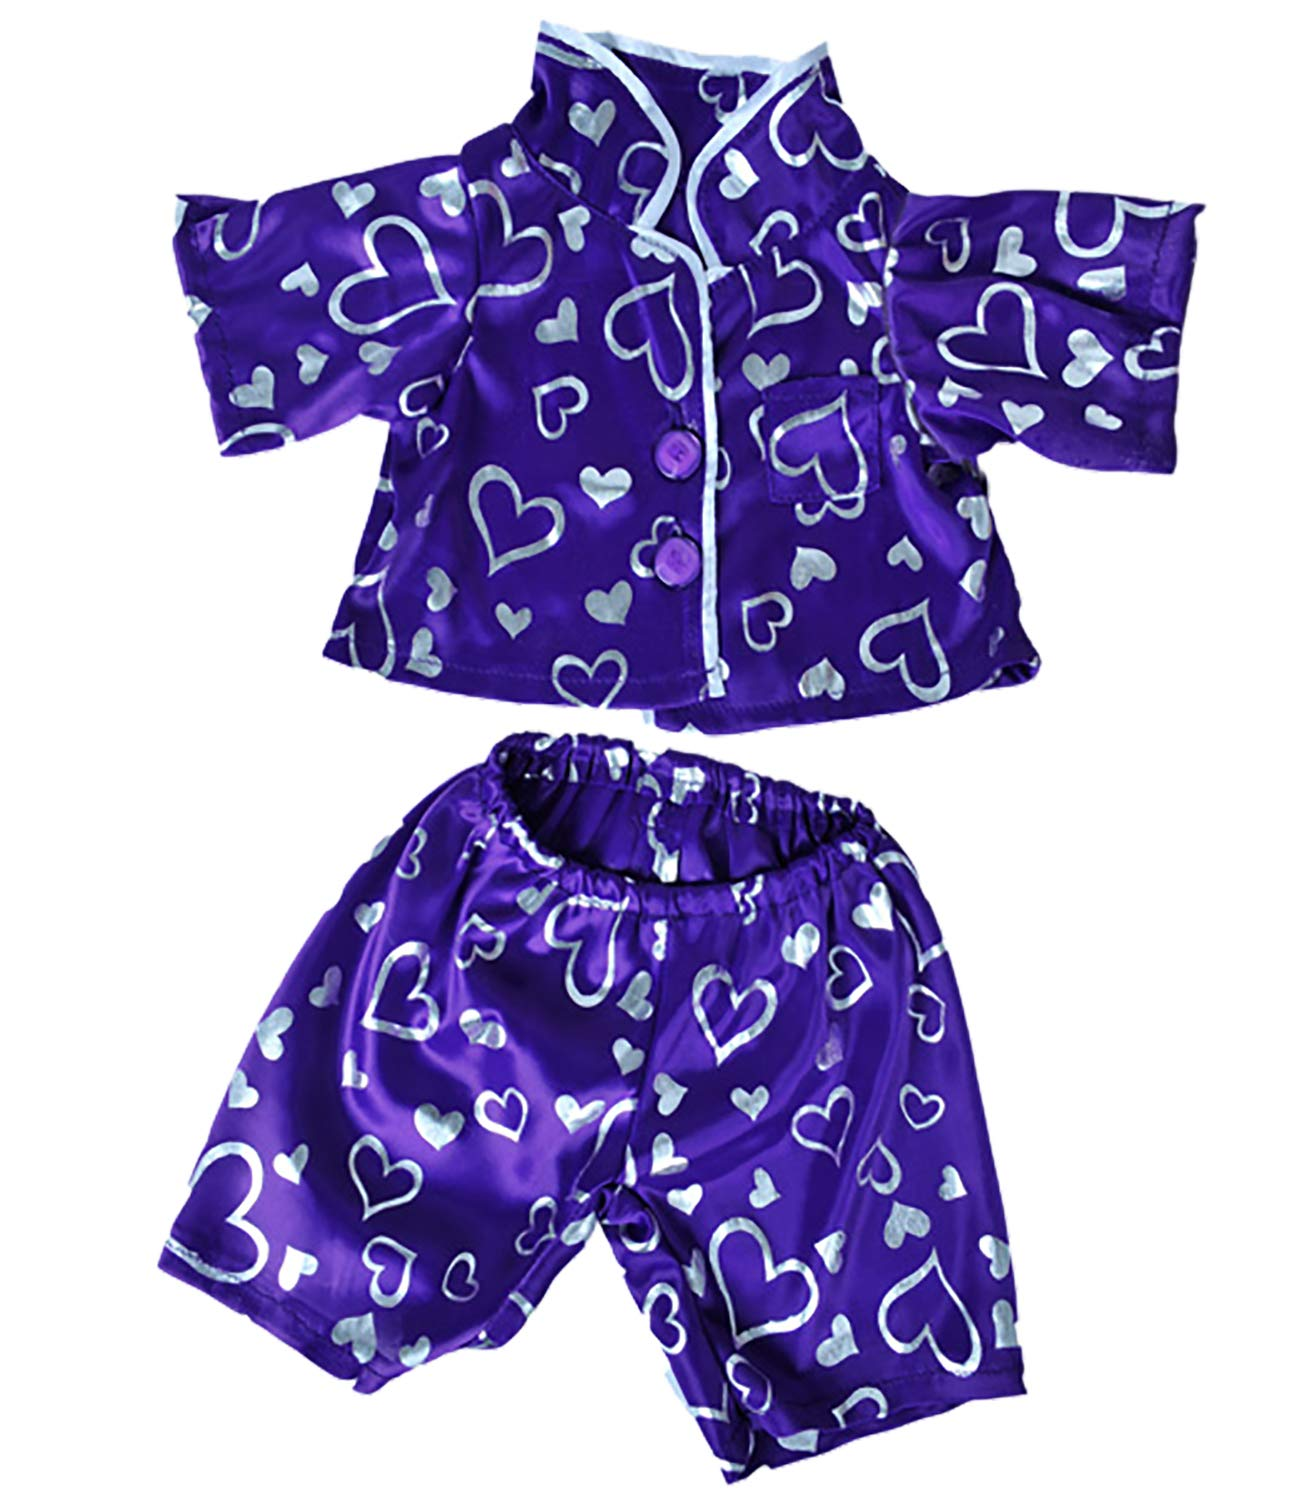 "B007OWPXTK Dark Purple Silver Heart PJ's Teddy Bear Clothes Outfit Fits Most 14"" - 18"" Build-A-Bear, Vermont Teddy Bears, and Make Your Own Stuffed Animals 71AqEXs5VBL"